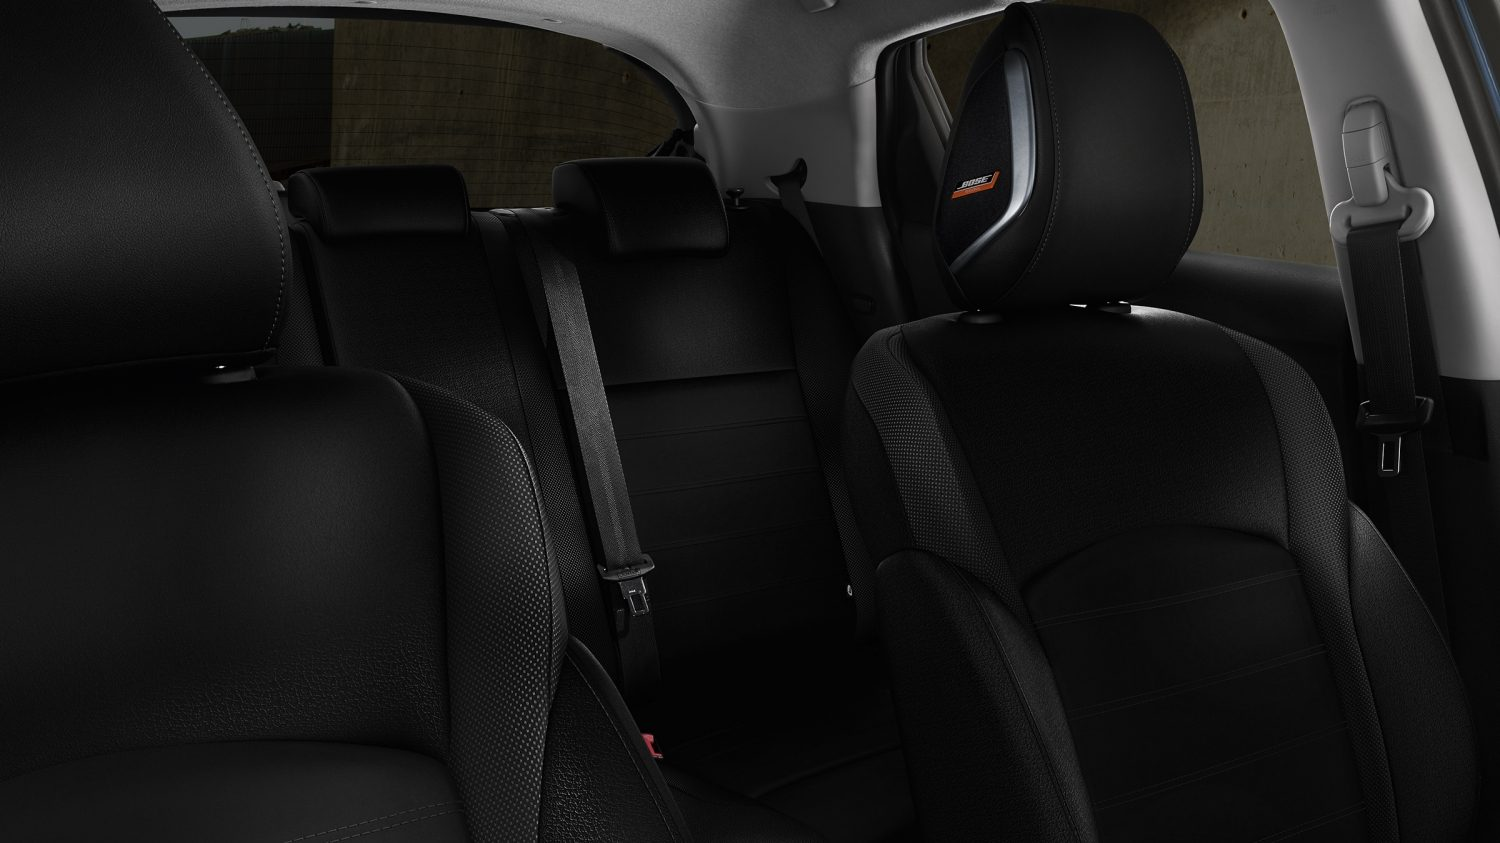 Nissan JUKE 2018 interieur met bekleding in Energy Orange